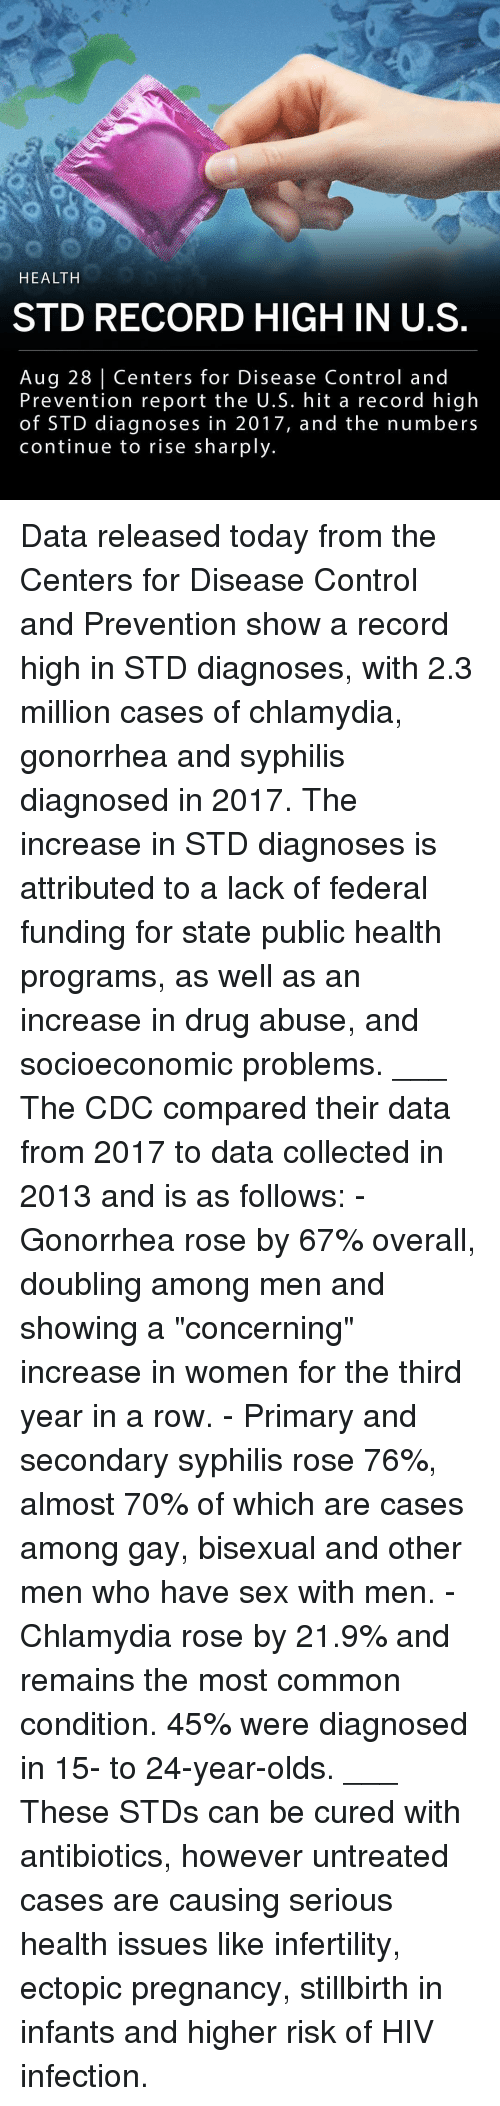 "Memes, Sex, and Control: HEALTH  STD RECORD HIGH IN U.S  Aug 28 Centers for Disease Control and  Prevention report the U.S. hit a record high  of STD diagnoses in 2017, and the numbers  continue to rise sharply. Data released today from the Centers for Disease Control and Prevention show a record high in STD diagnoses, with 2.3 million cases of chlamydia, gonorrhea and syphilis diagnosed in 2017. The increase in STD diagnoses is attributed to a lack of federal funding for state public health programs, as well as an increase in drug abuse, and socioeconomic problems. ___ The CDC compared their data from 2017 to data collected in 2013 and is as follows: - Gonorrhea rose by 67% overall, doubling among men and showing a ""concerning"" increase in women for the third year in a row. - Primary and secondary syphilis rose 76%, almost 70% of which are cases among gay, bisexual and other men who have sex with men. - Chlamydia rose by 21.9% and remains the most common condition. 45% were diagnosed in 15- to 24-year-olds. ___ These STDs can be cured with antibiotics, however untreated cases are causing serious health issues like infertility, ectopic pregnancy, stillbirth in infants and higher risk of HIV infection."